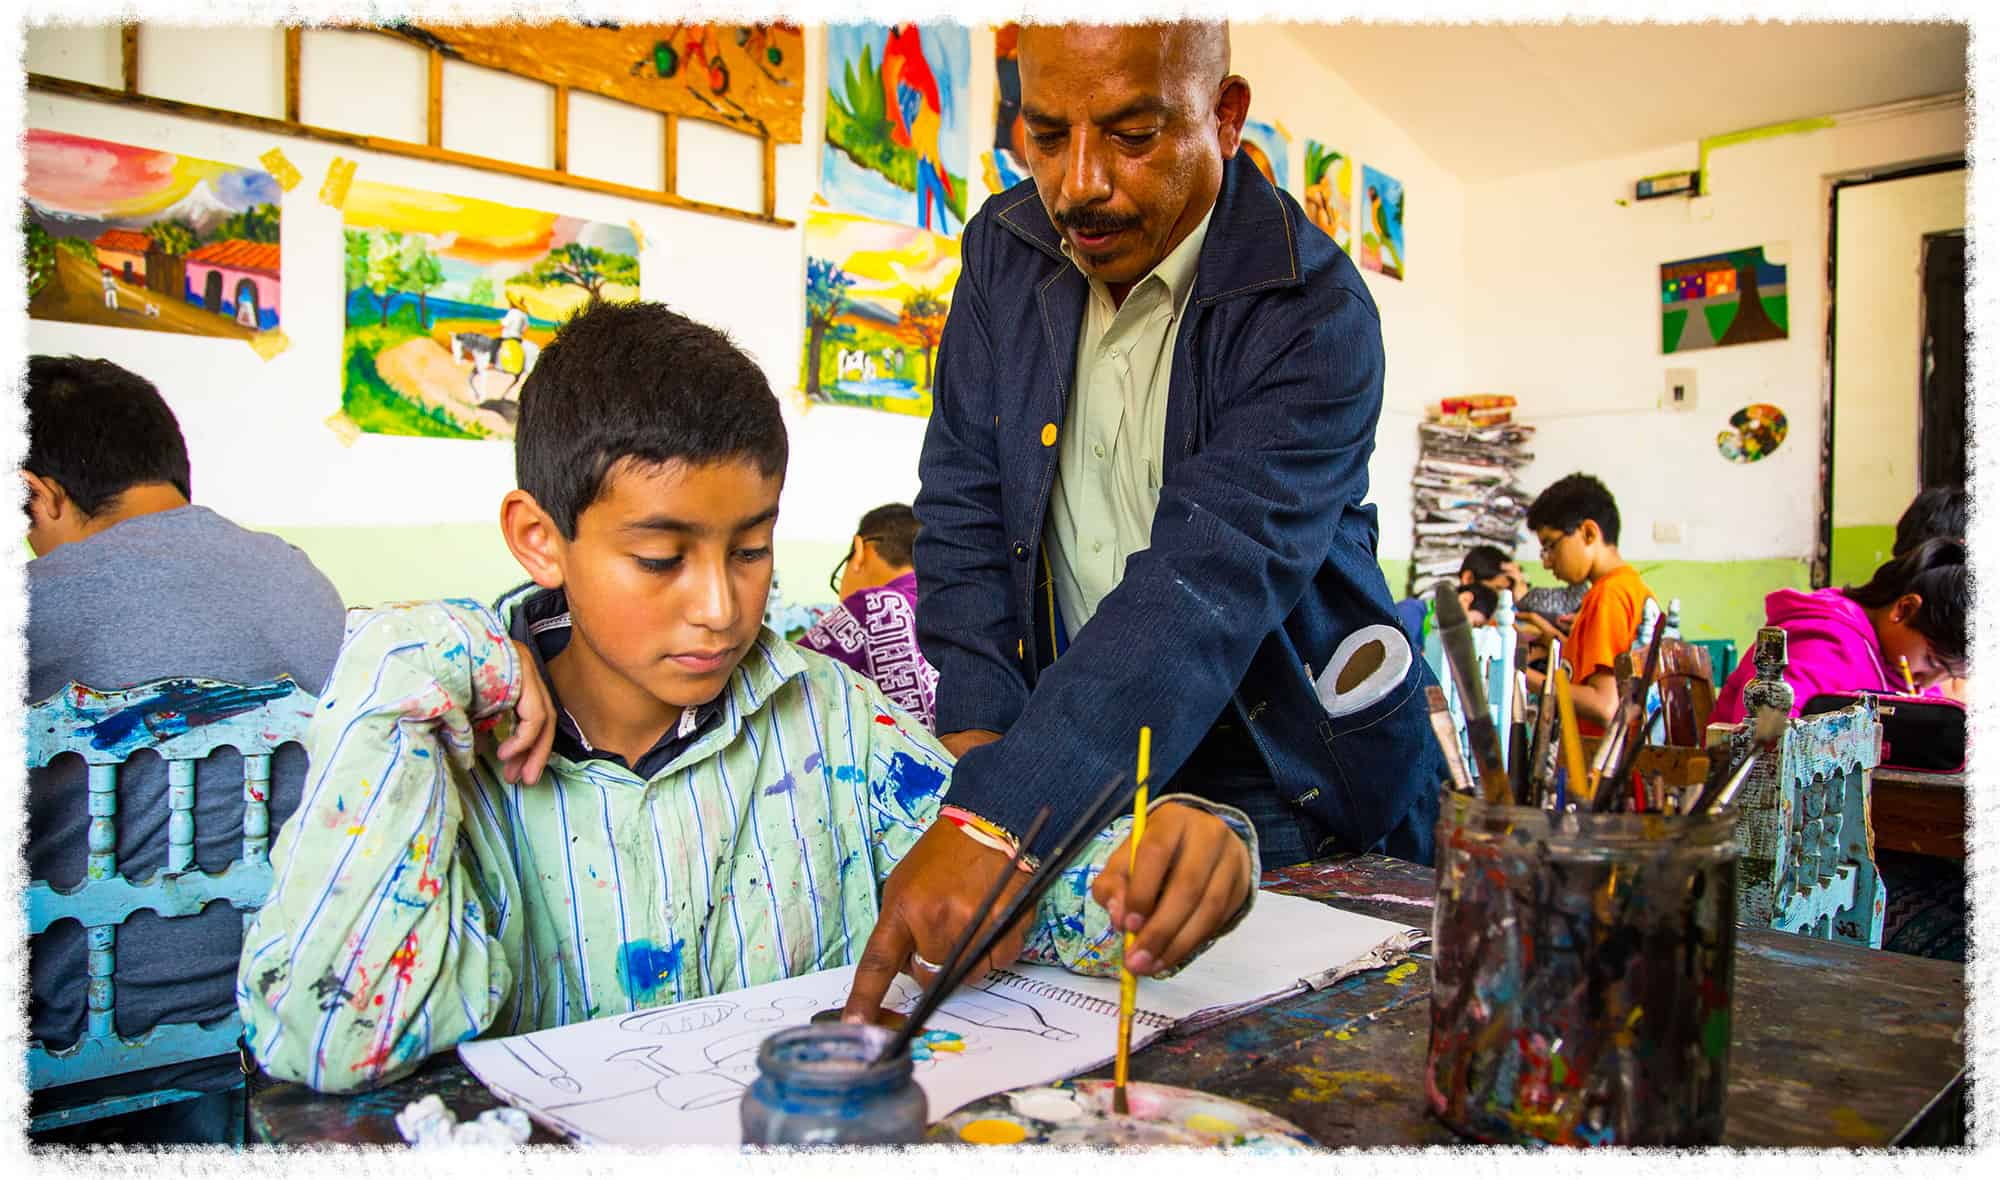 10-year-old-Hector learns about art at his school in MExico.